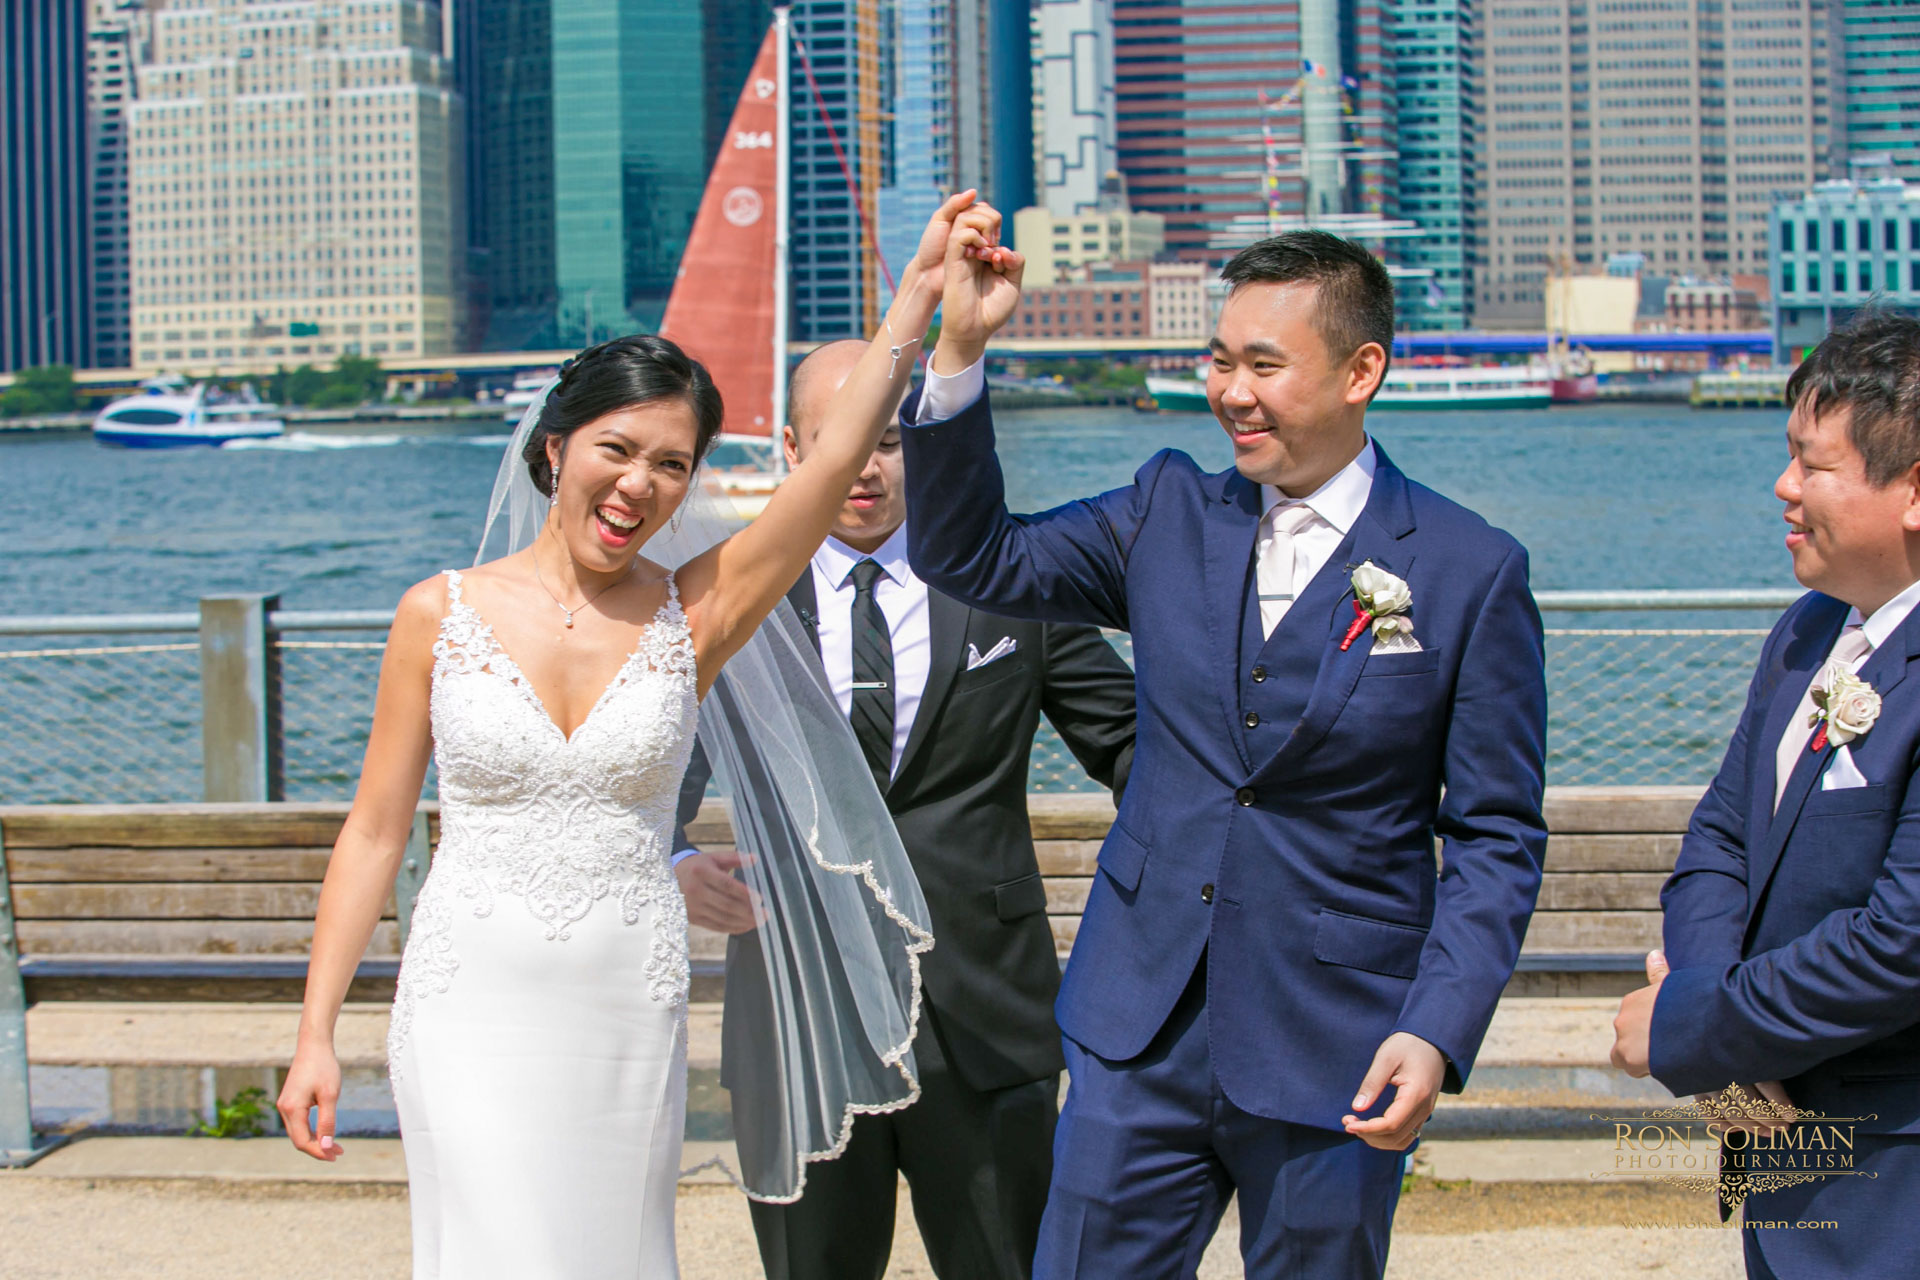 Brooklyn Bridge Park Wedding 20